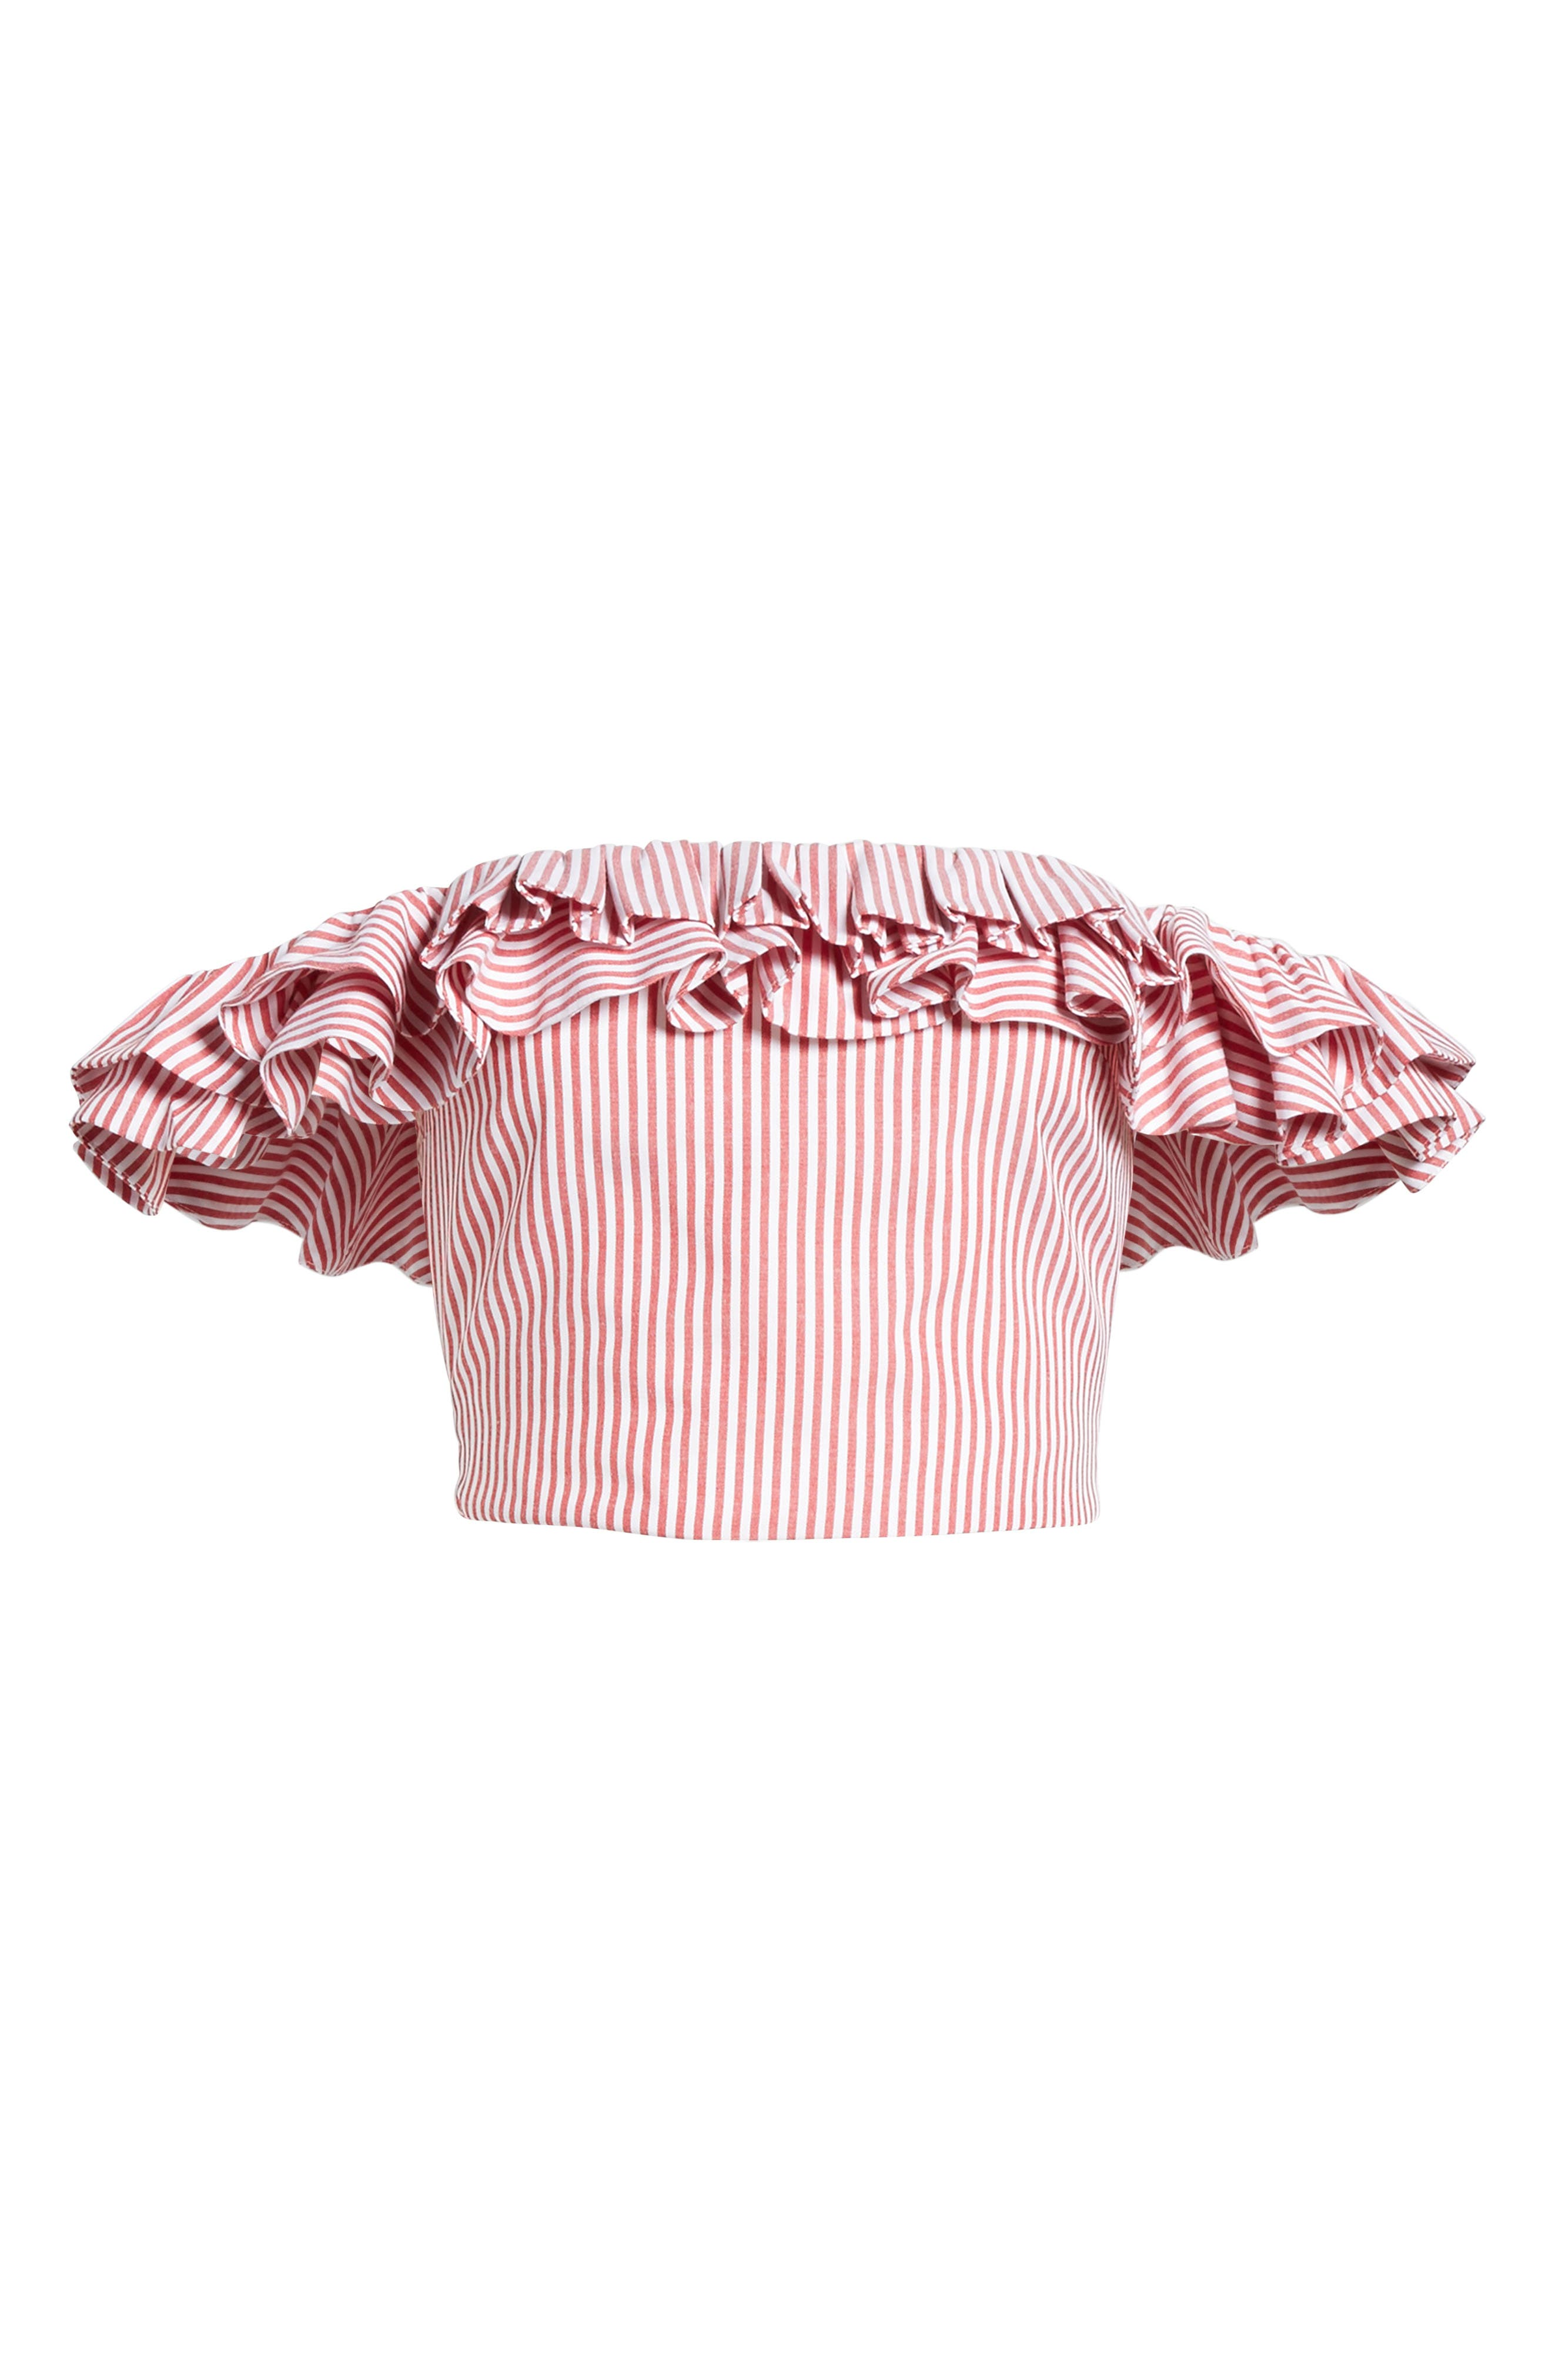 Anzio Off the Shoulder Ruffle Crop Top,                             Alternate thumbnail 13, color,                             Red Stripe